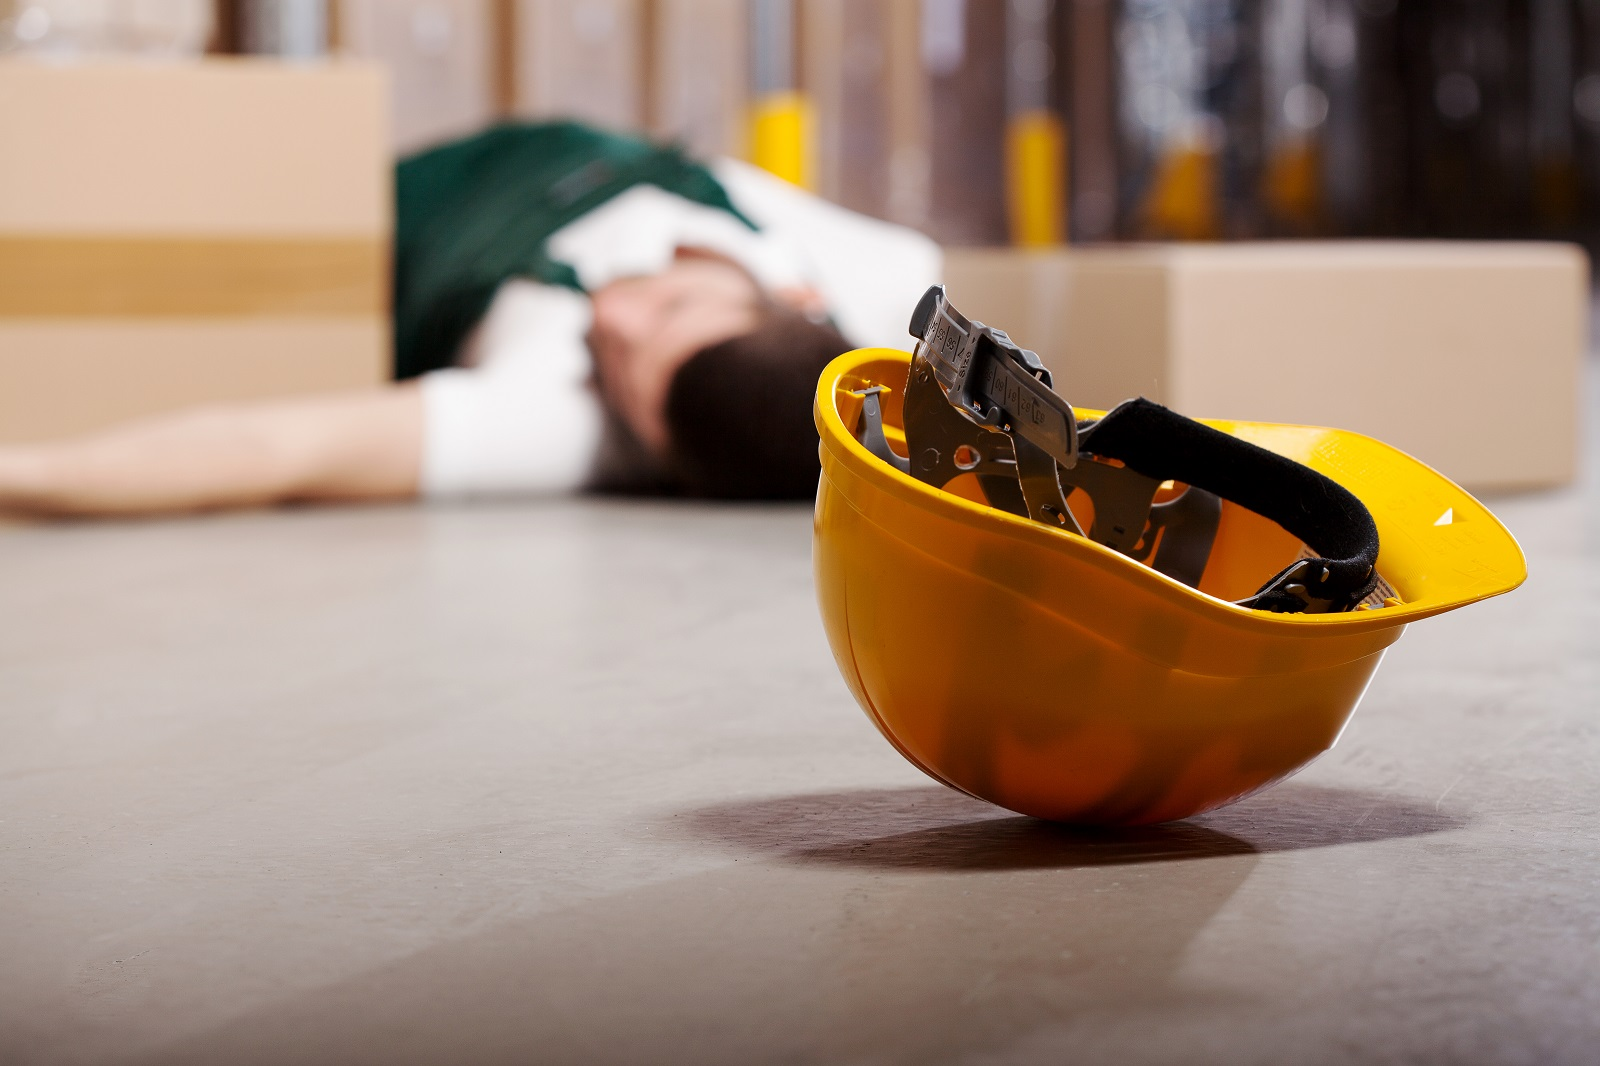 Work Injuries – Worker's Compensation